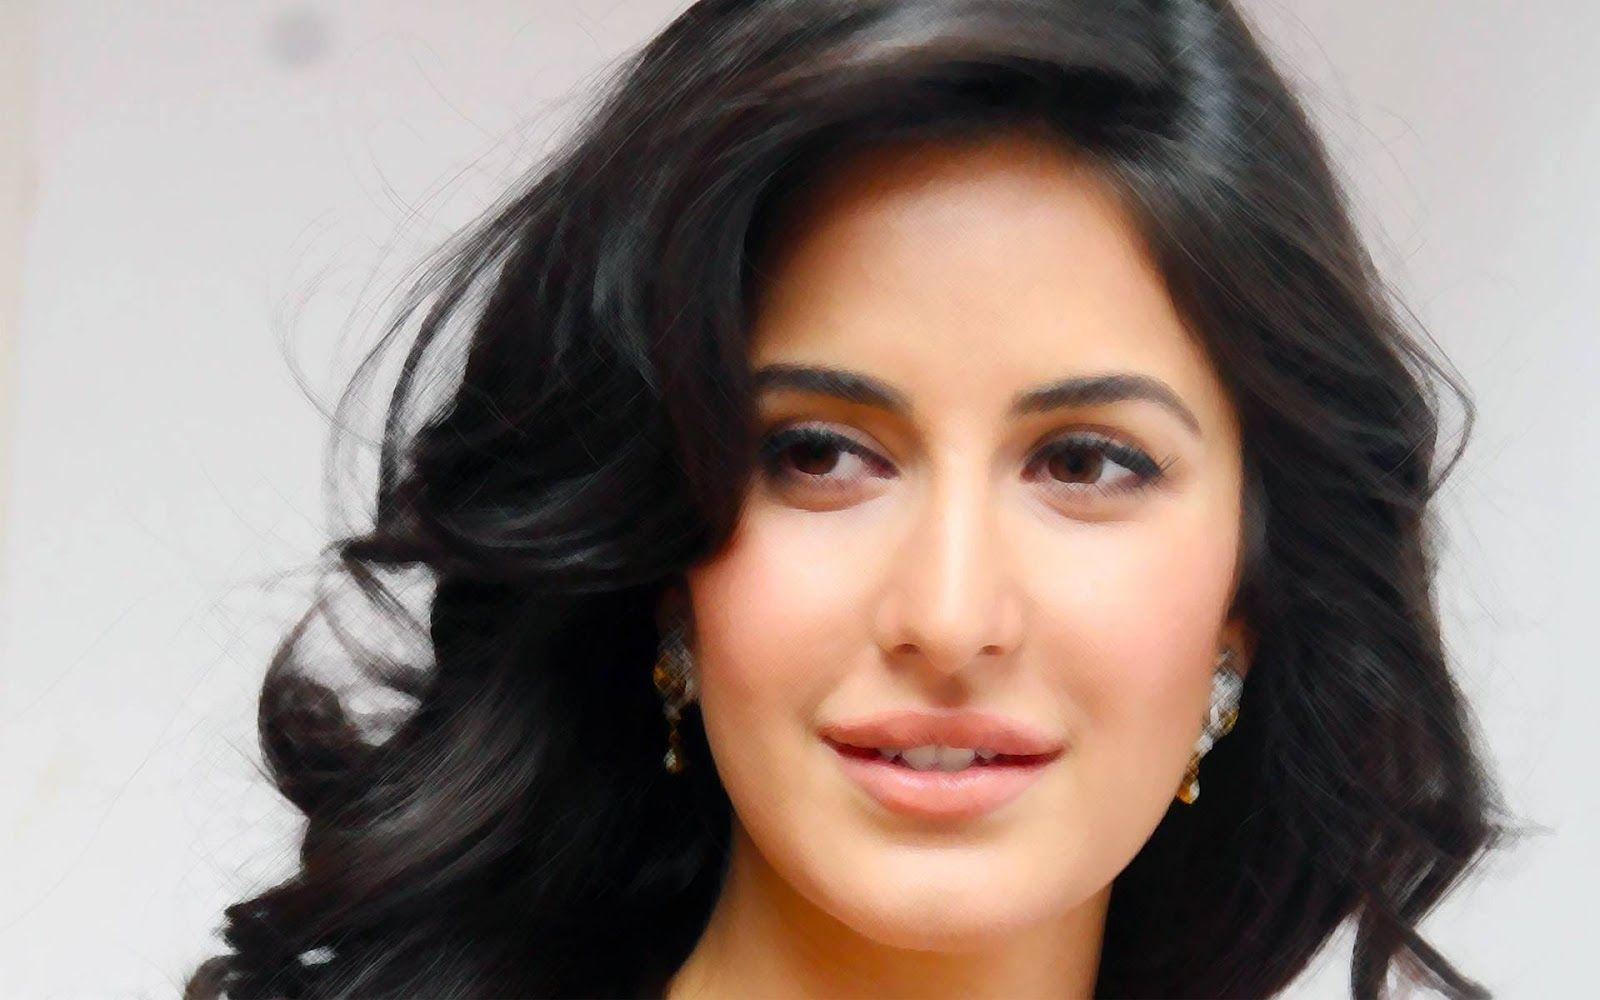 katrina kaif wallpapers hd - wallpaper cave